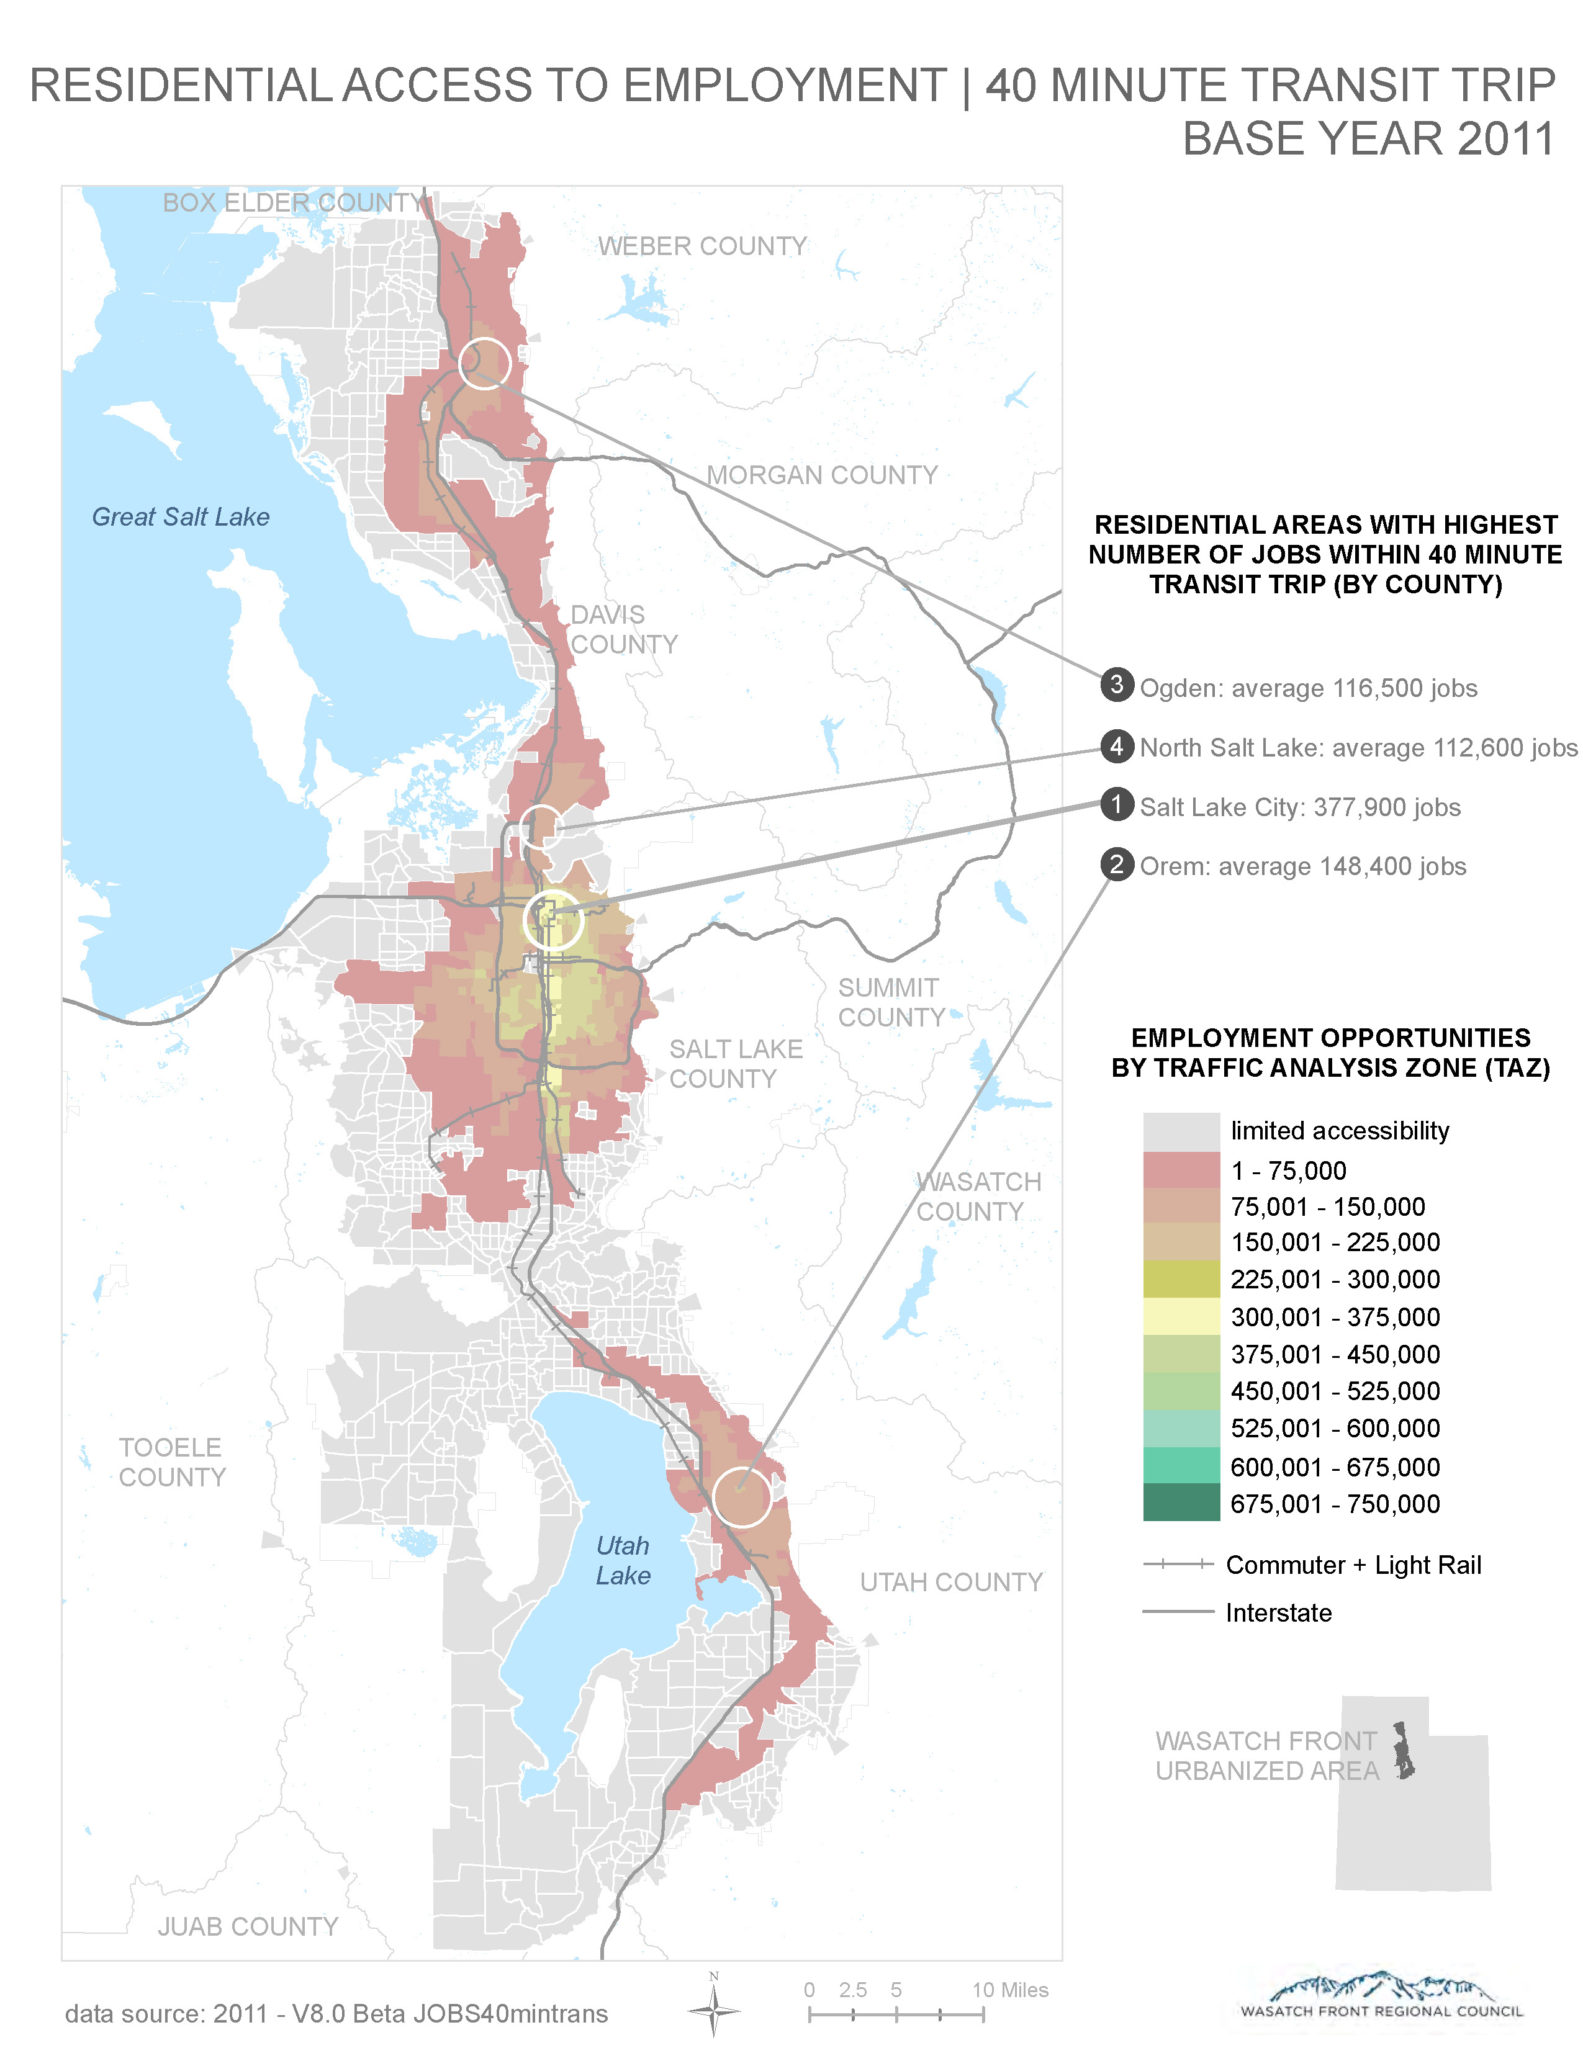 Residential Access to Employment via a 40-Minute Transit Trip heat map.